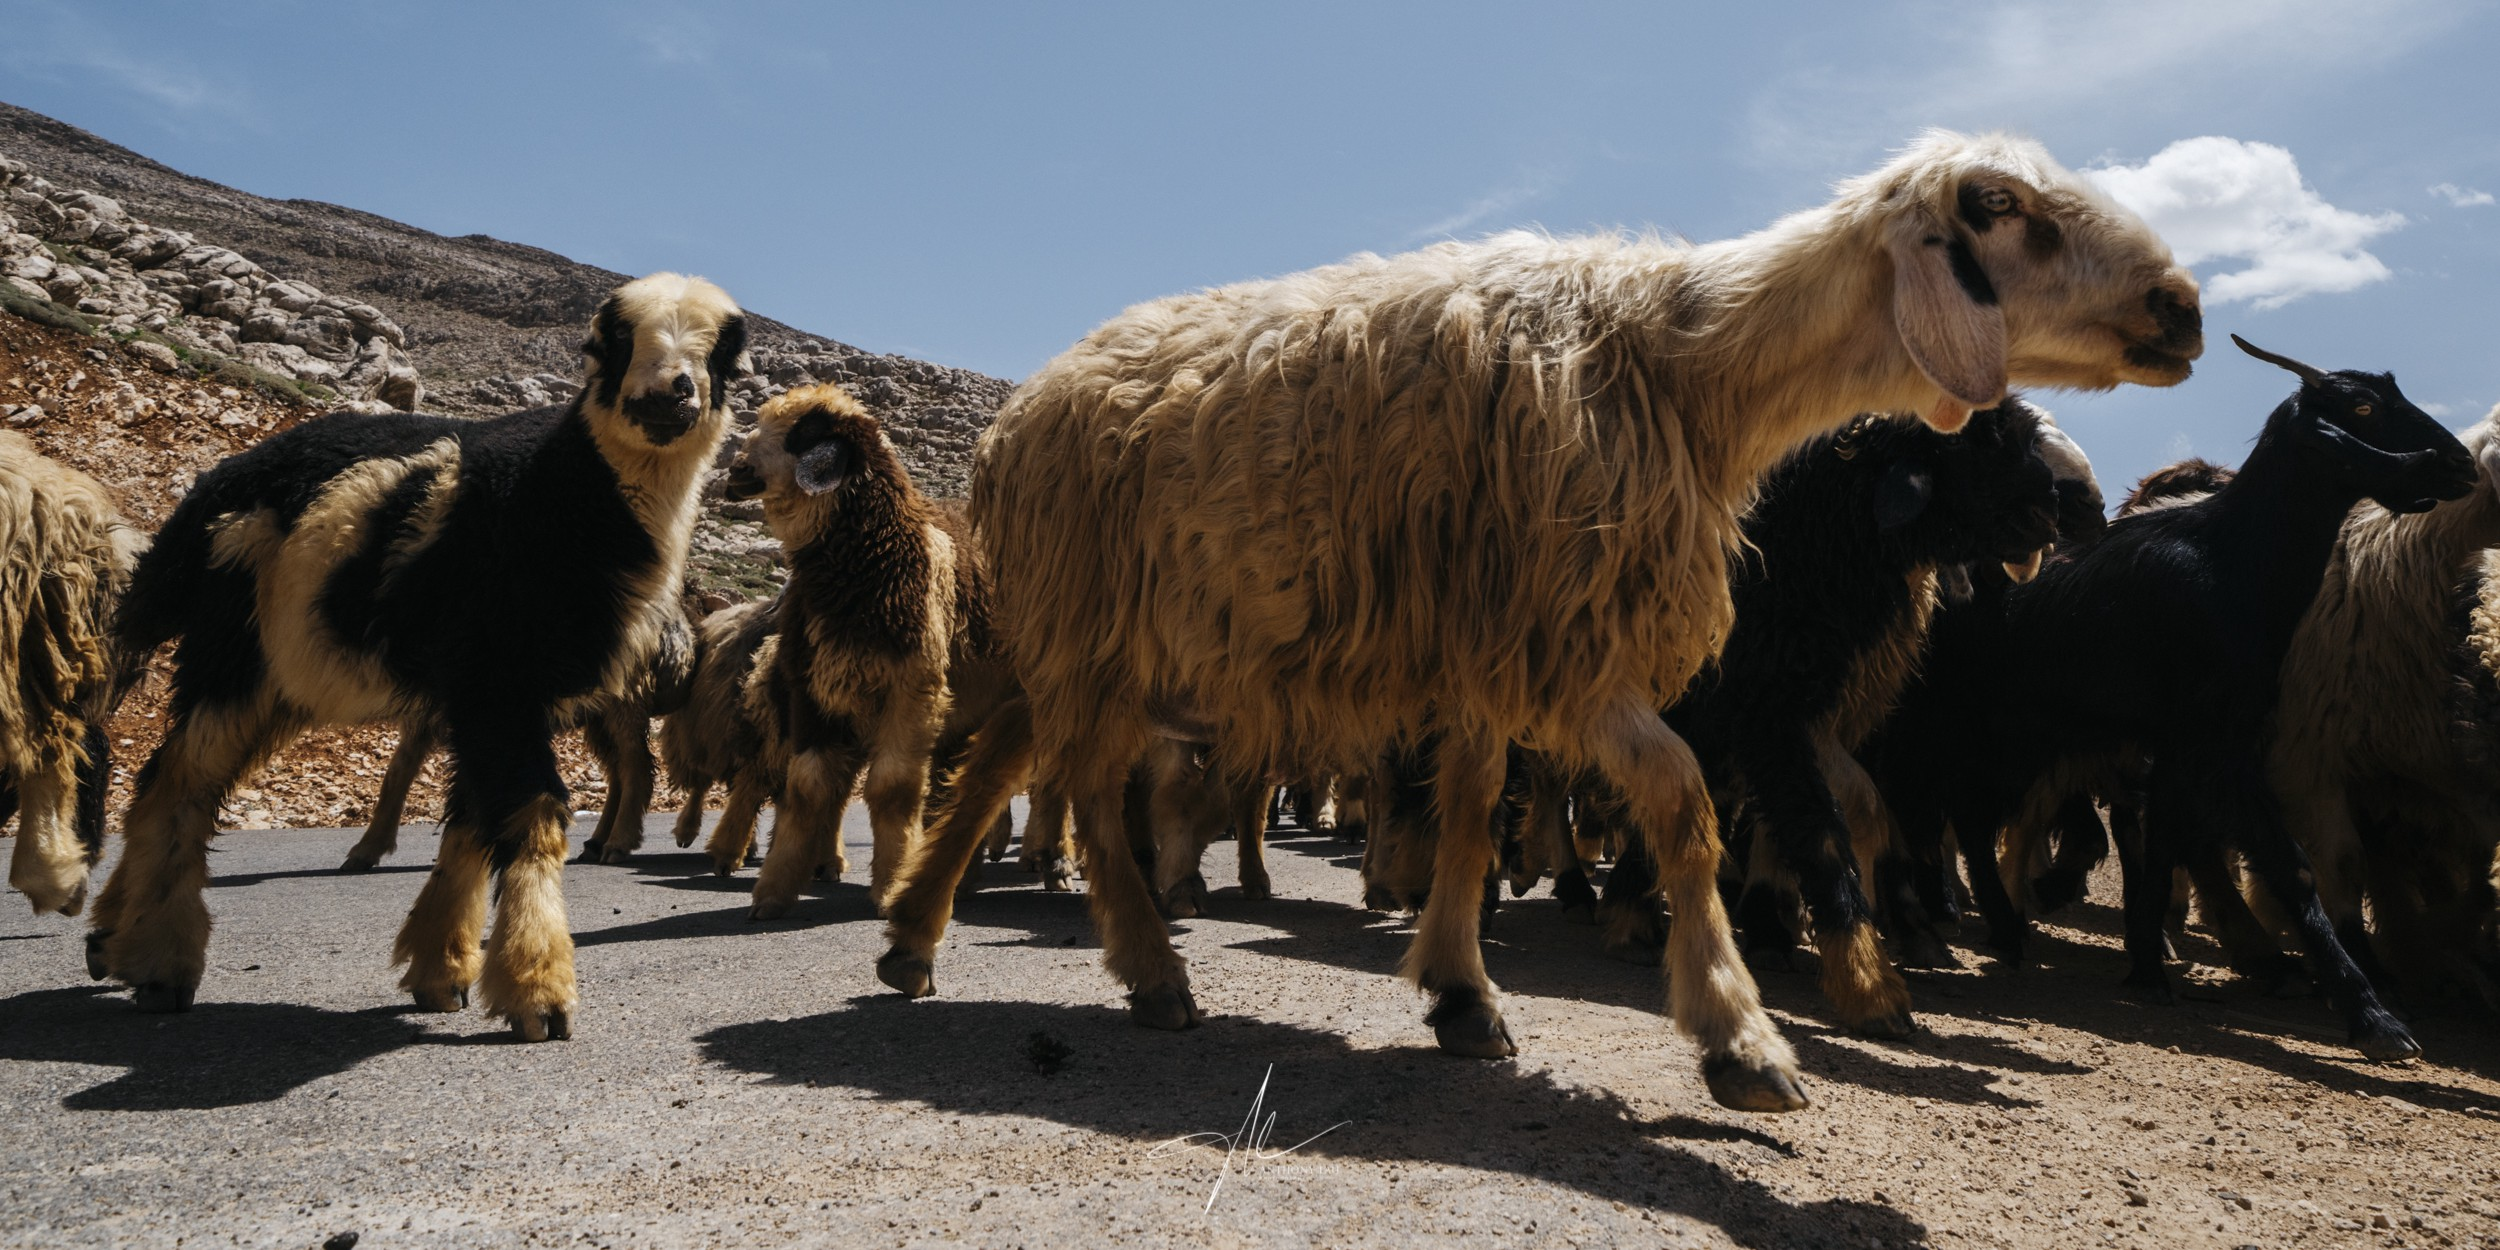 A massive flock of sheep crossing in the Zagros mountain highway, along with their Qashqai shepherds.